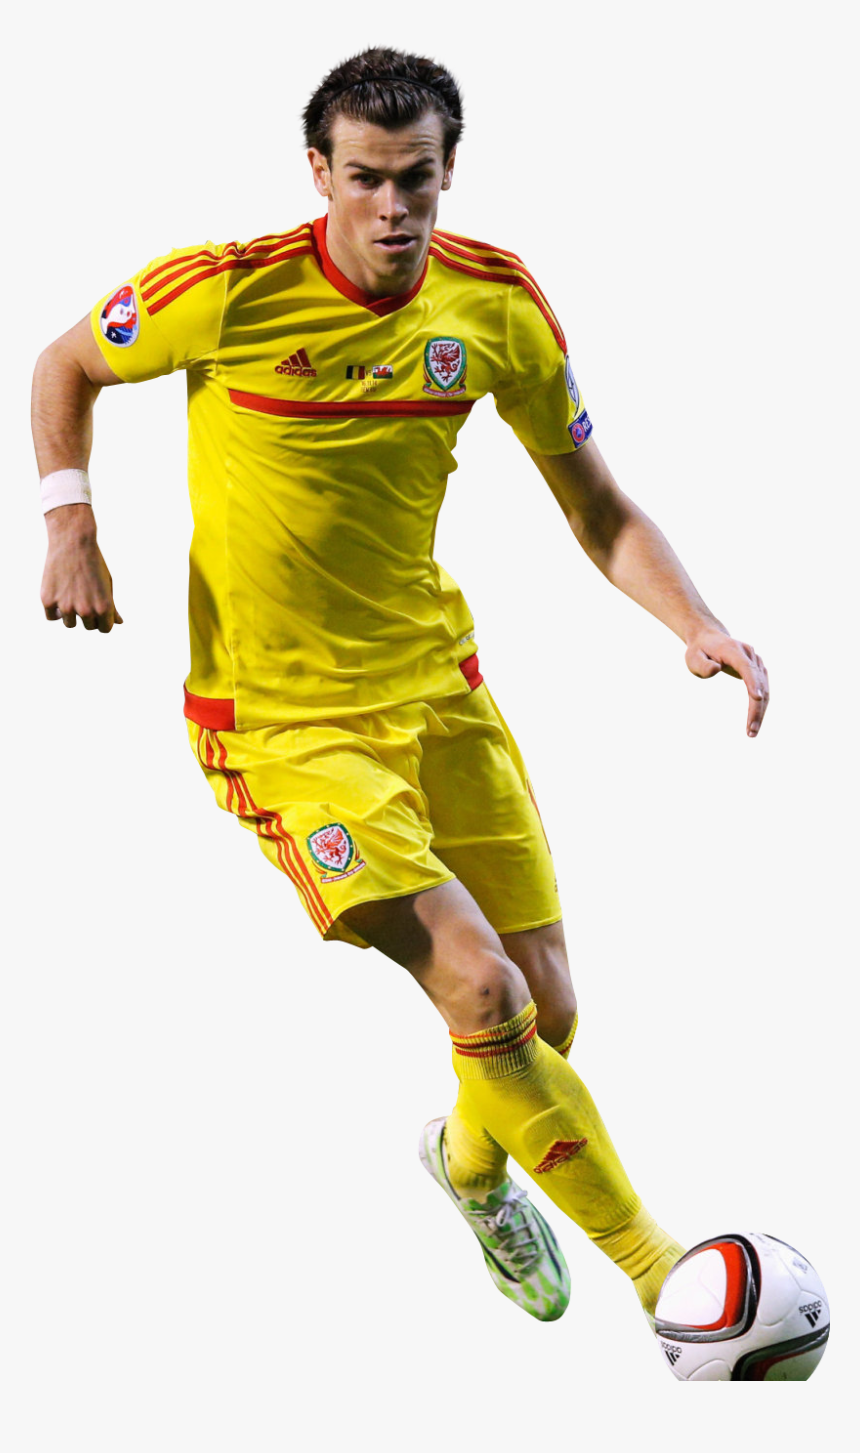 Sports , Png Download - Player, Transparent Png, Free Download